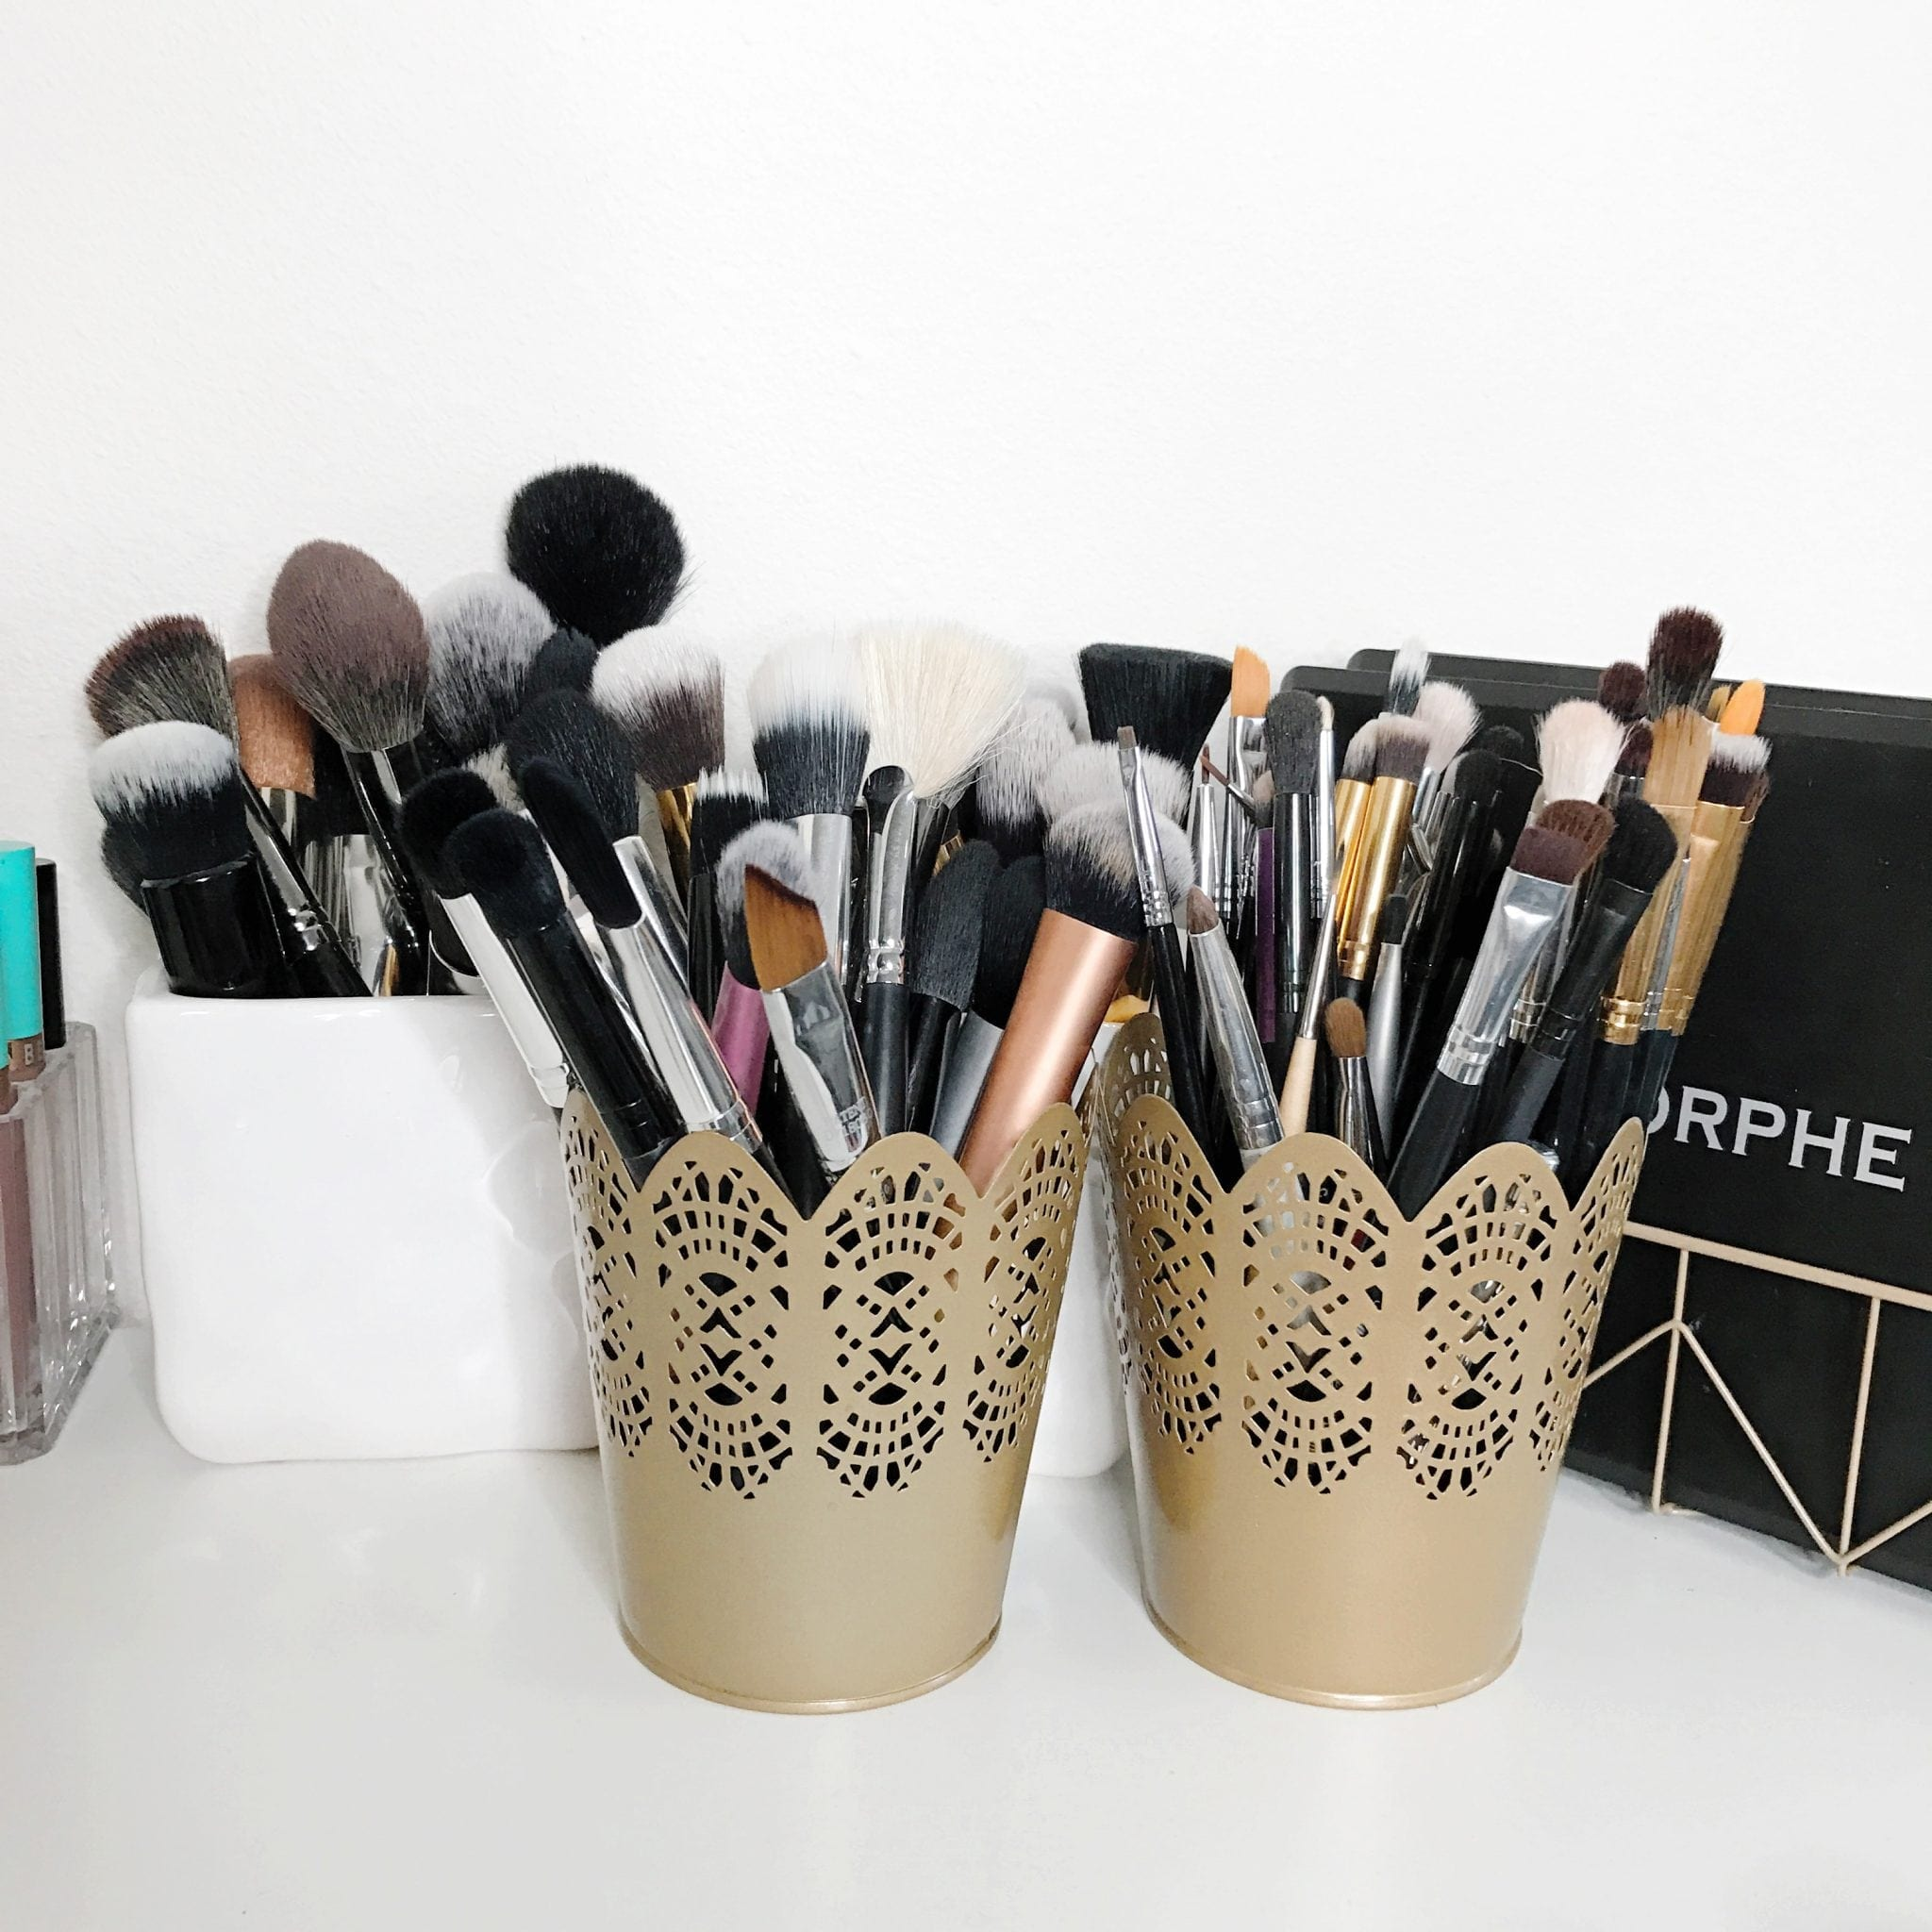 How I Store My Makeup Brush Holders